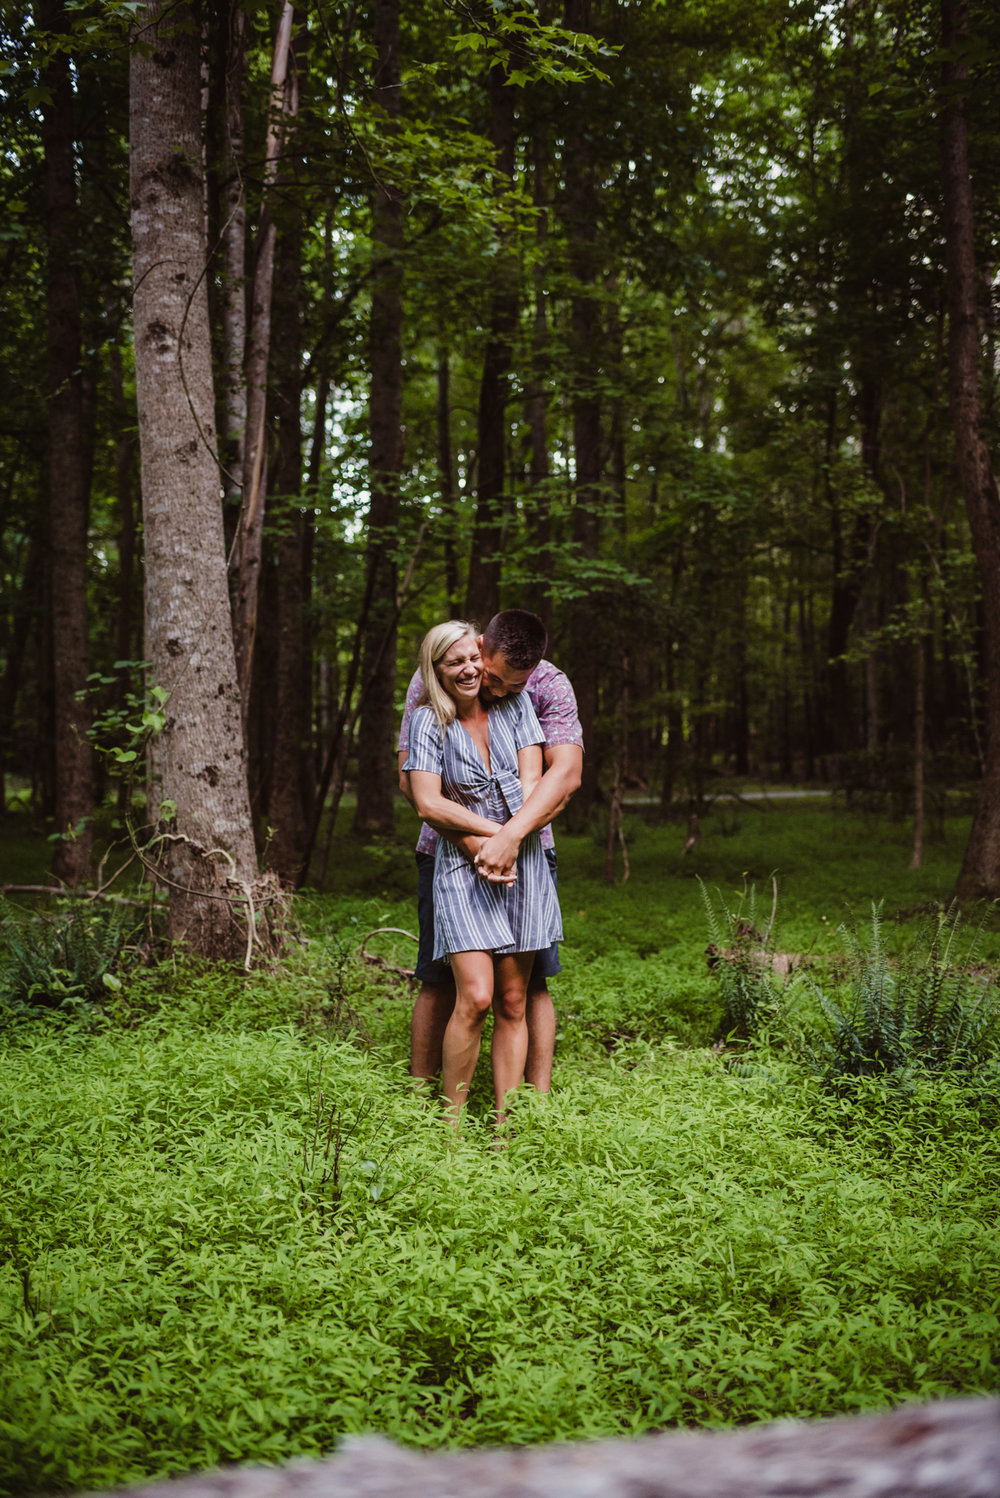 Kristin and Drew snuggled in the woods during their engagement shoot in Raleigh with Rose Trail Images.